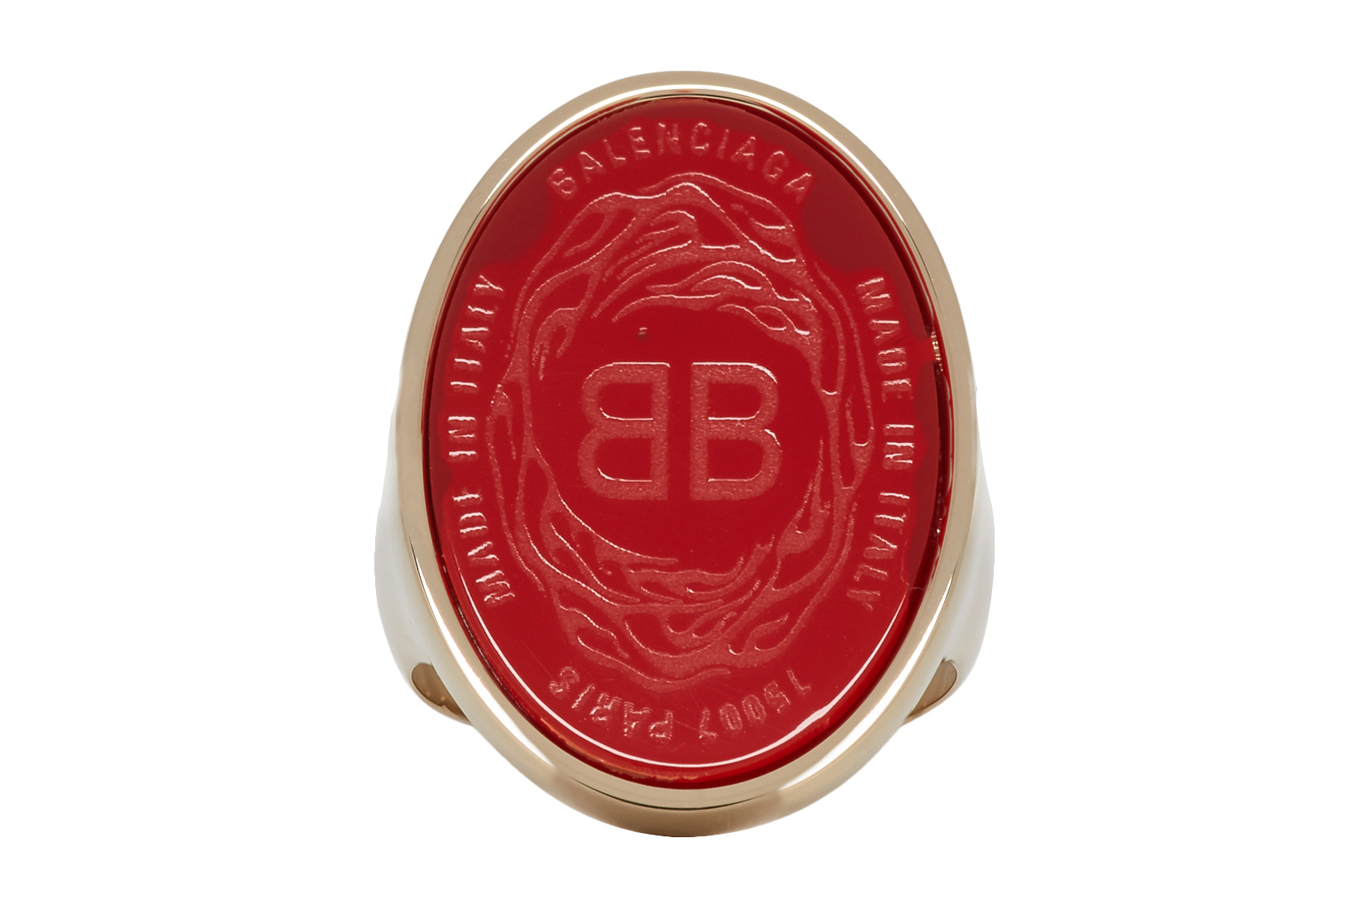 Balenciaga Chevaliere Signet Ring In Three New Colors Info Fashion Style Chevaliere Jewellery Accessories